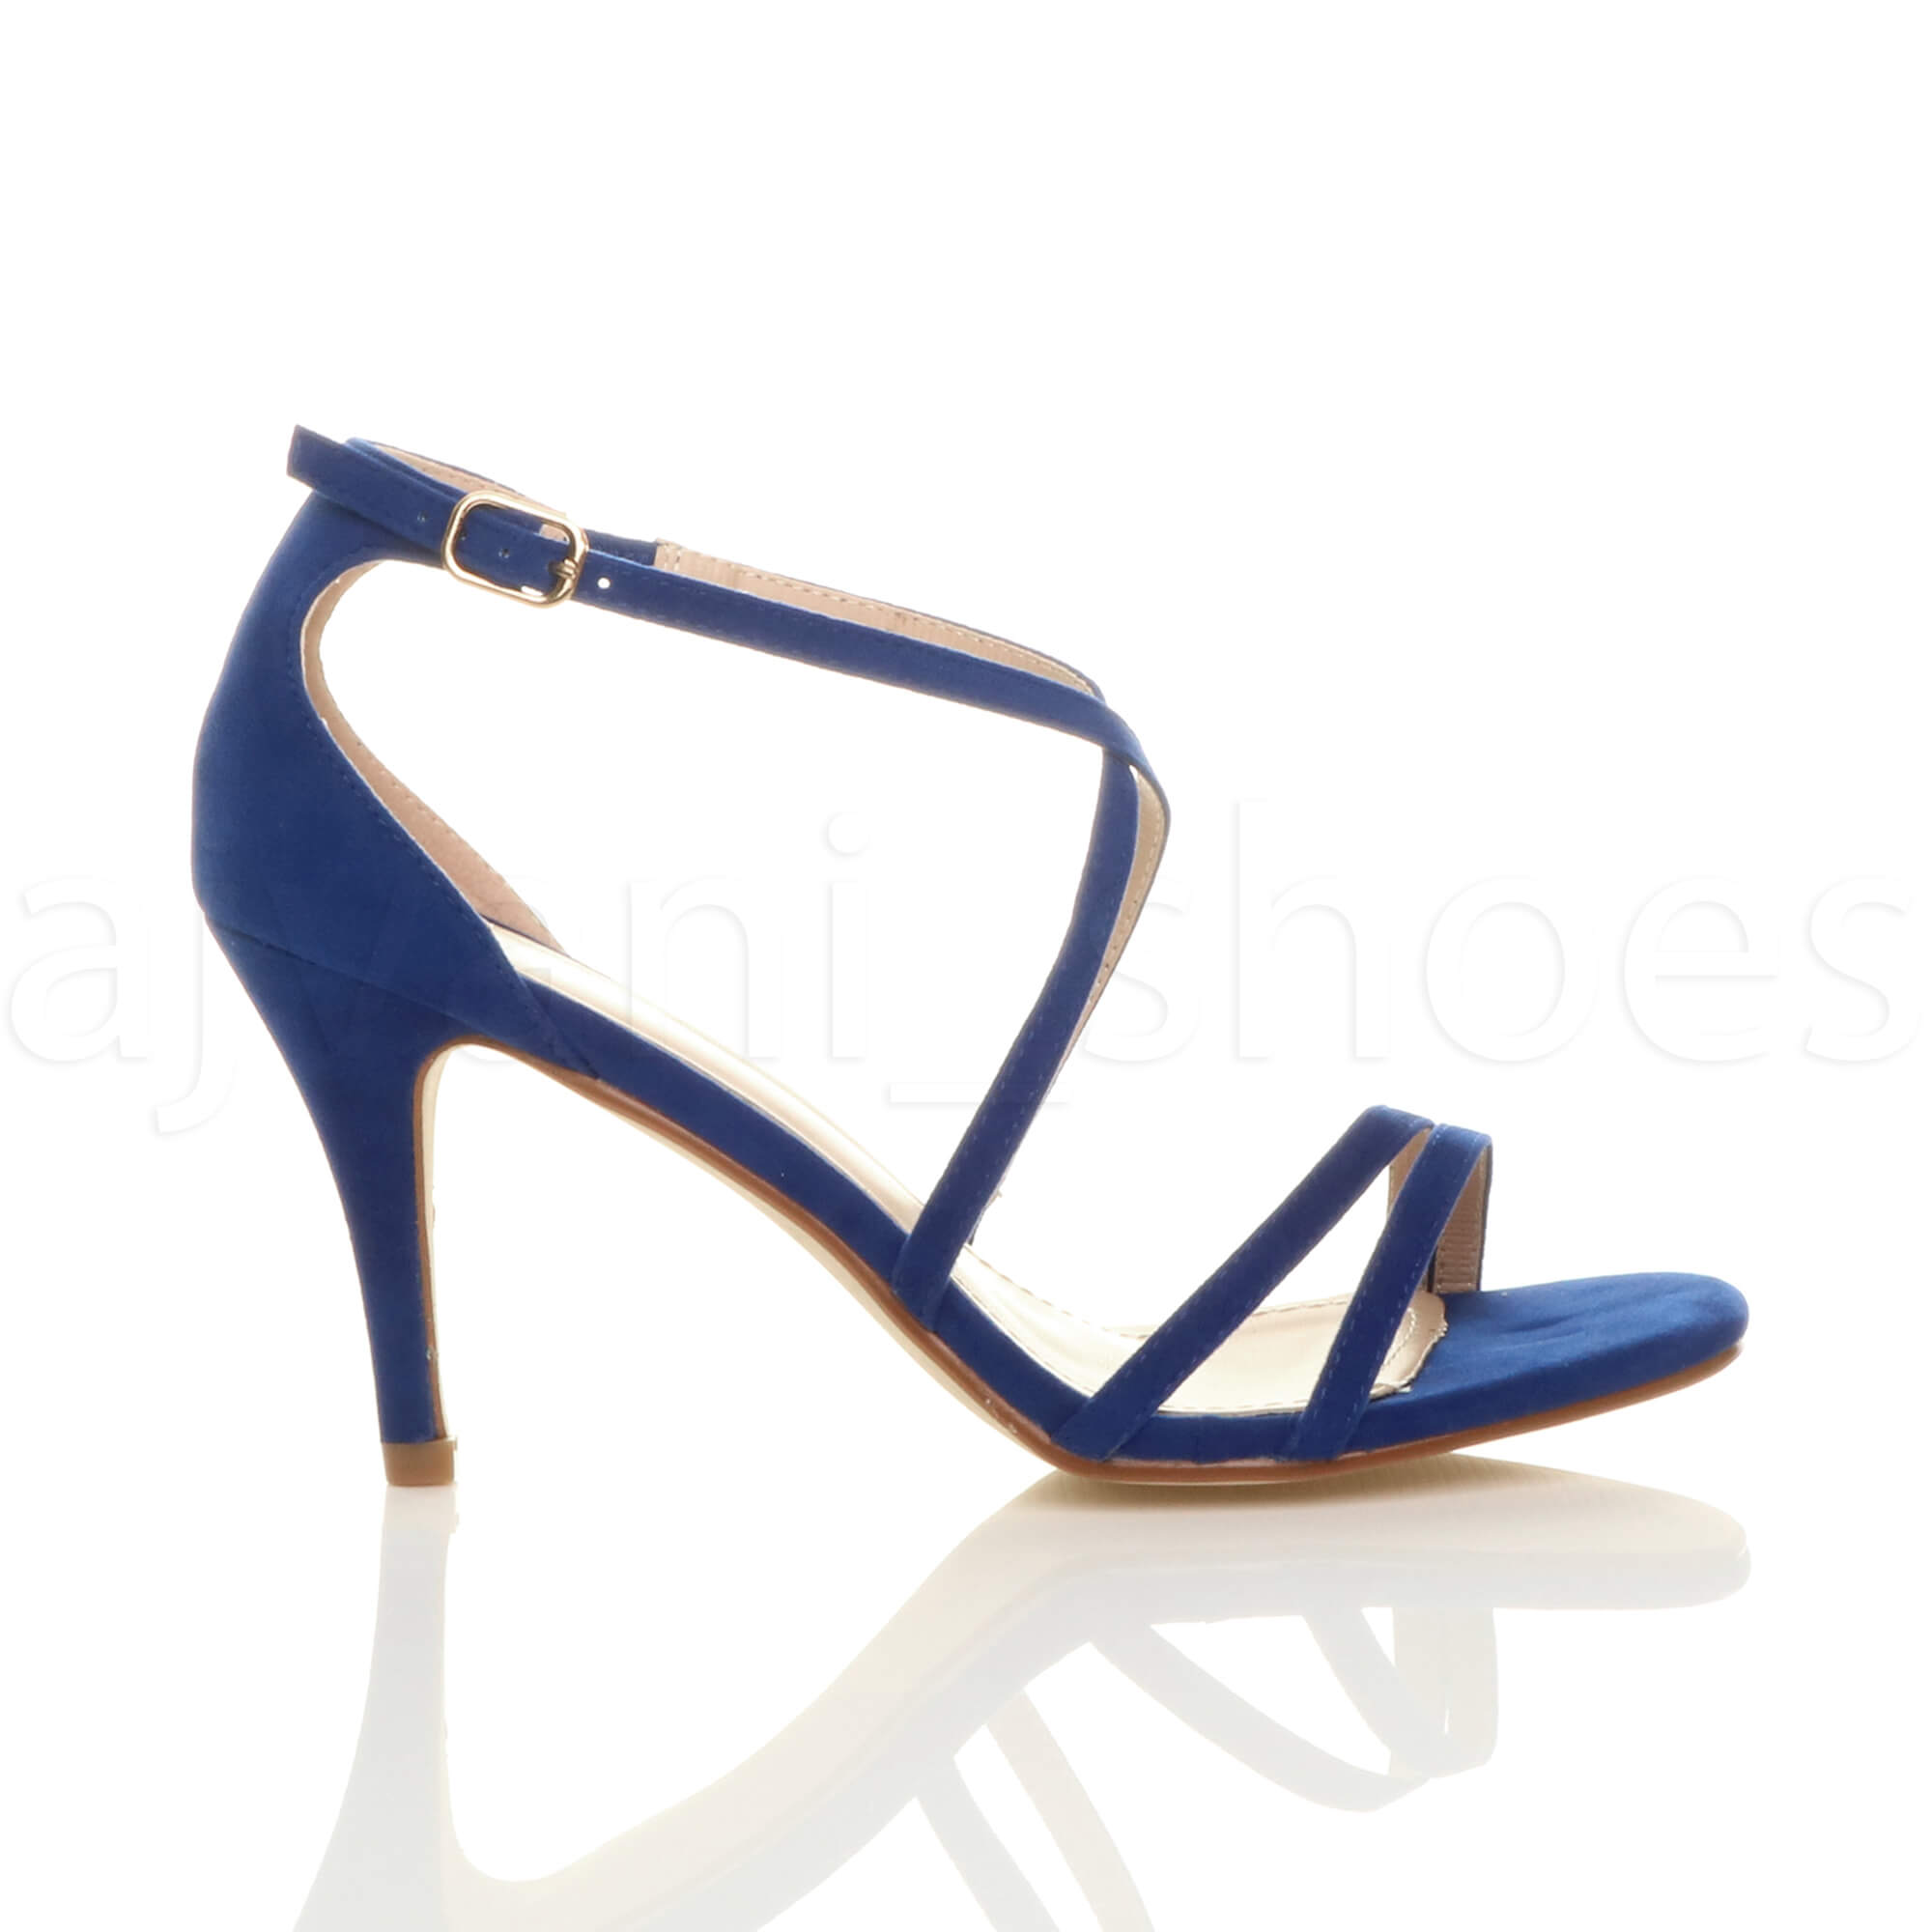 WOMENS-LADIES-MID-HIGH-HEEL-STRAPPY-CROSSOVER-WEDDING-PROM-SANDALS-SHOES-SIZE thumbnail 31